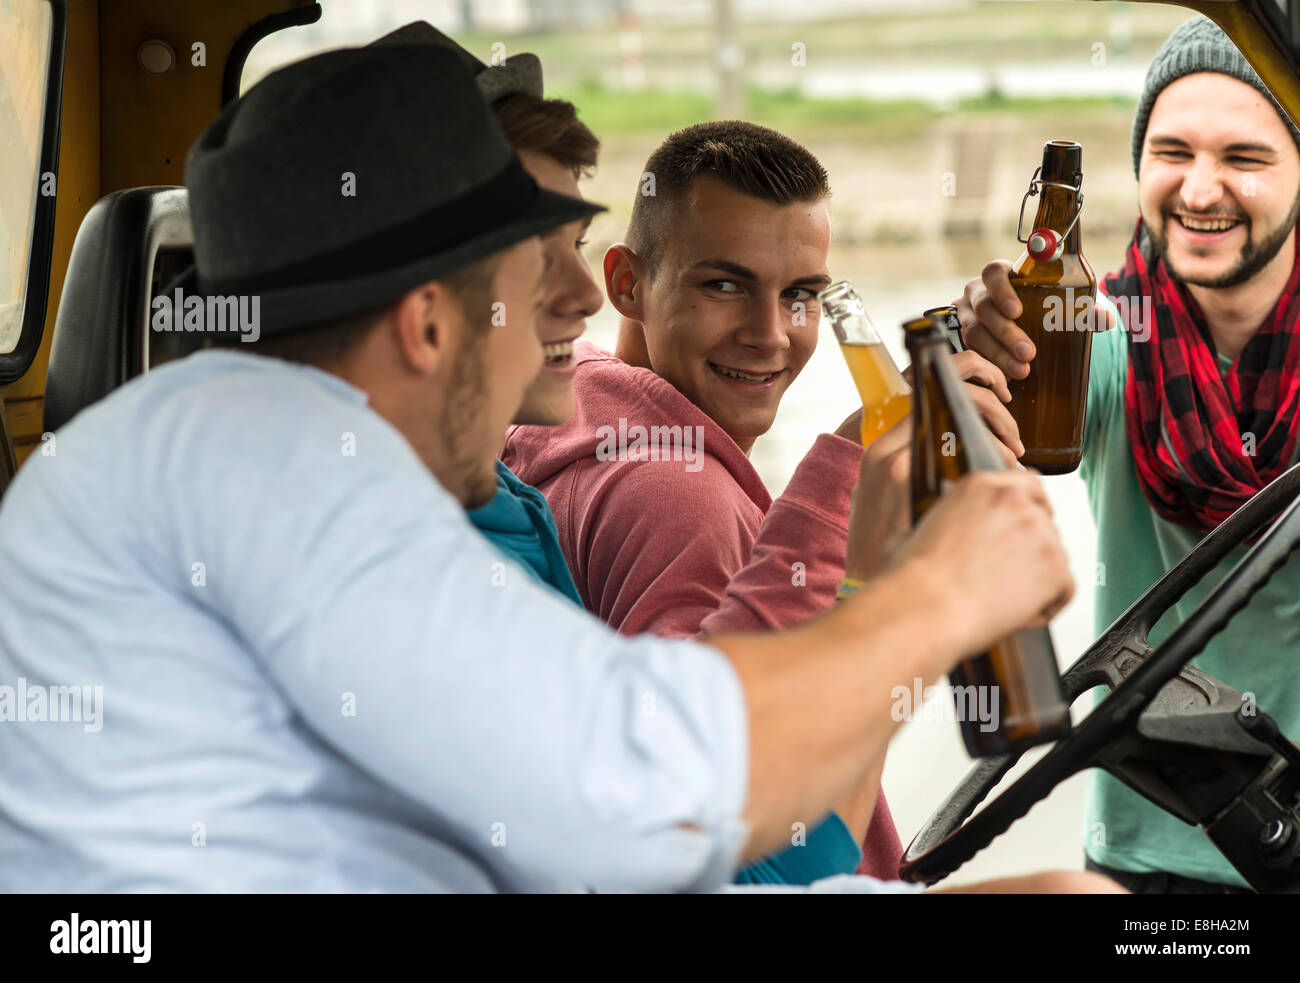 Group of friends drinking beer in car - Stock Image